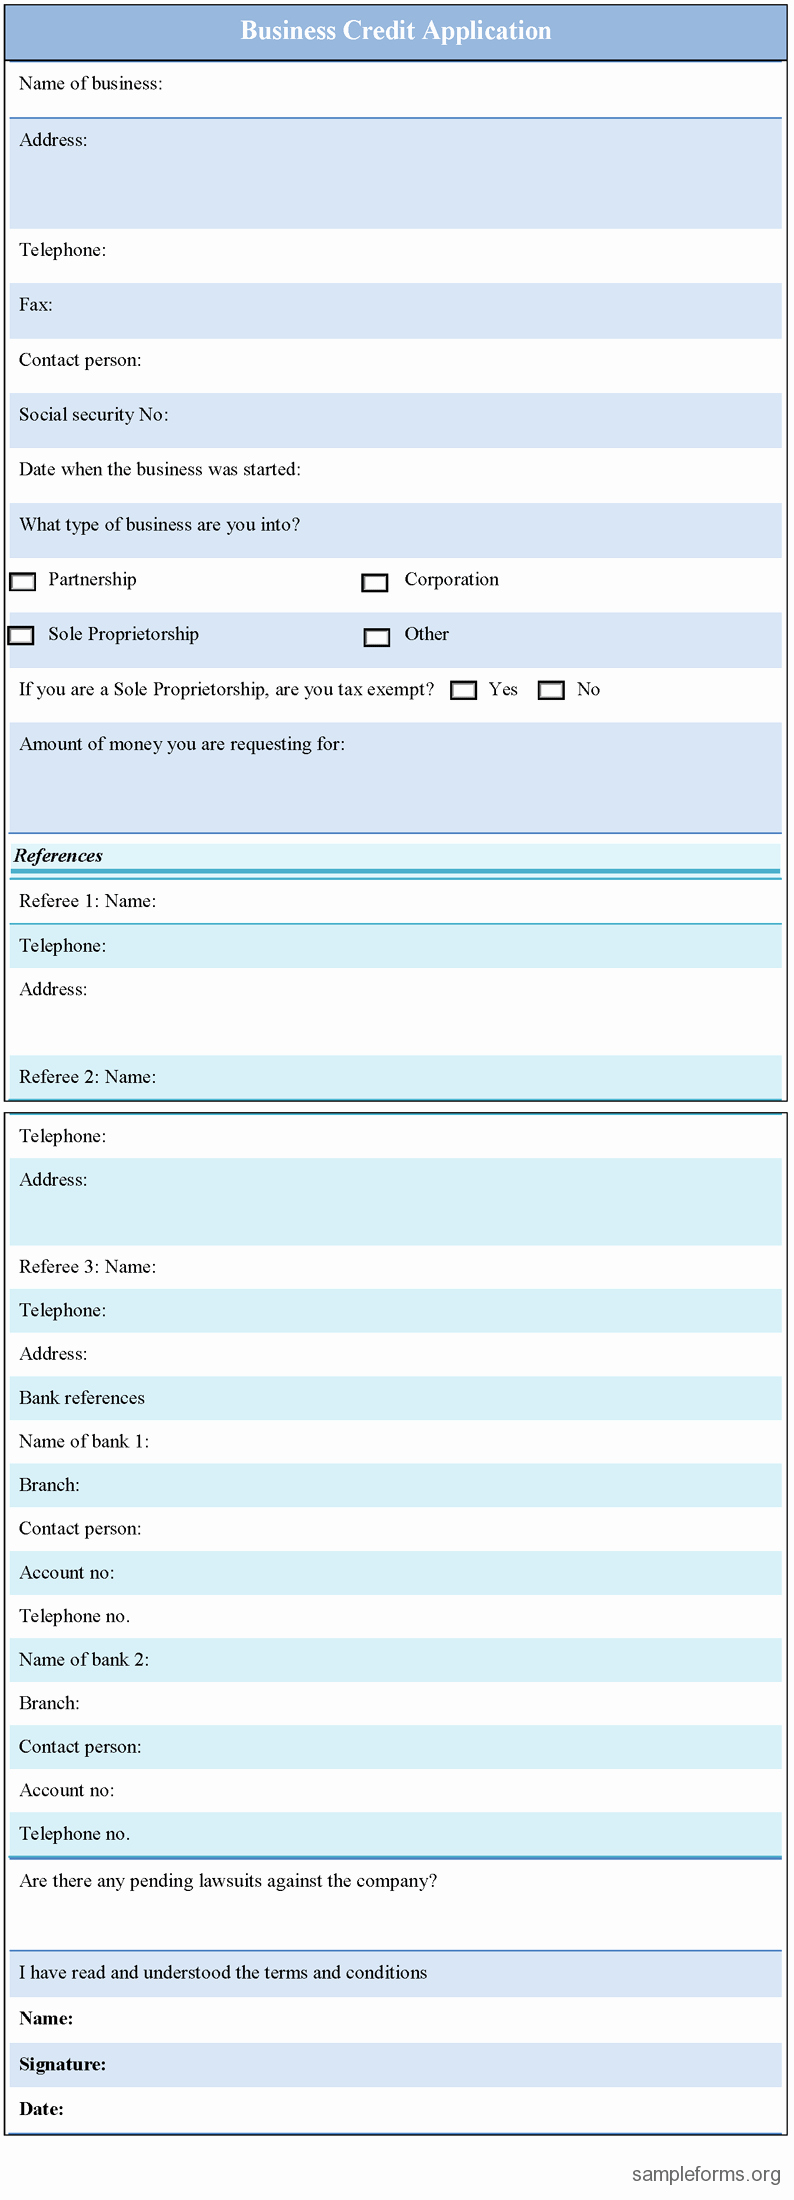 Business to Business Credit Application Best Of Business License Application form Sample forms